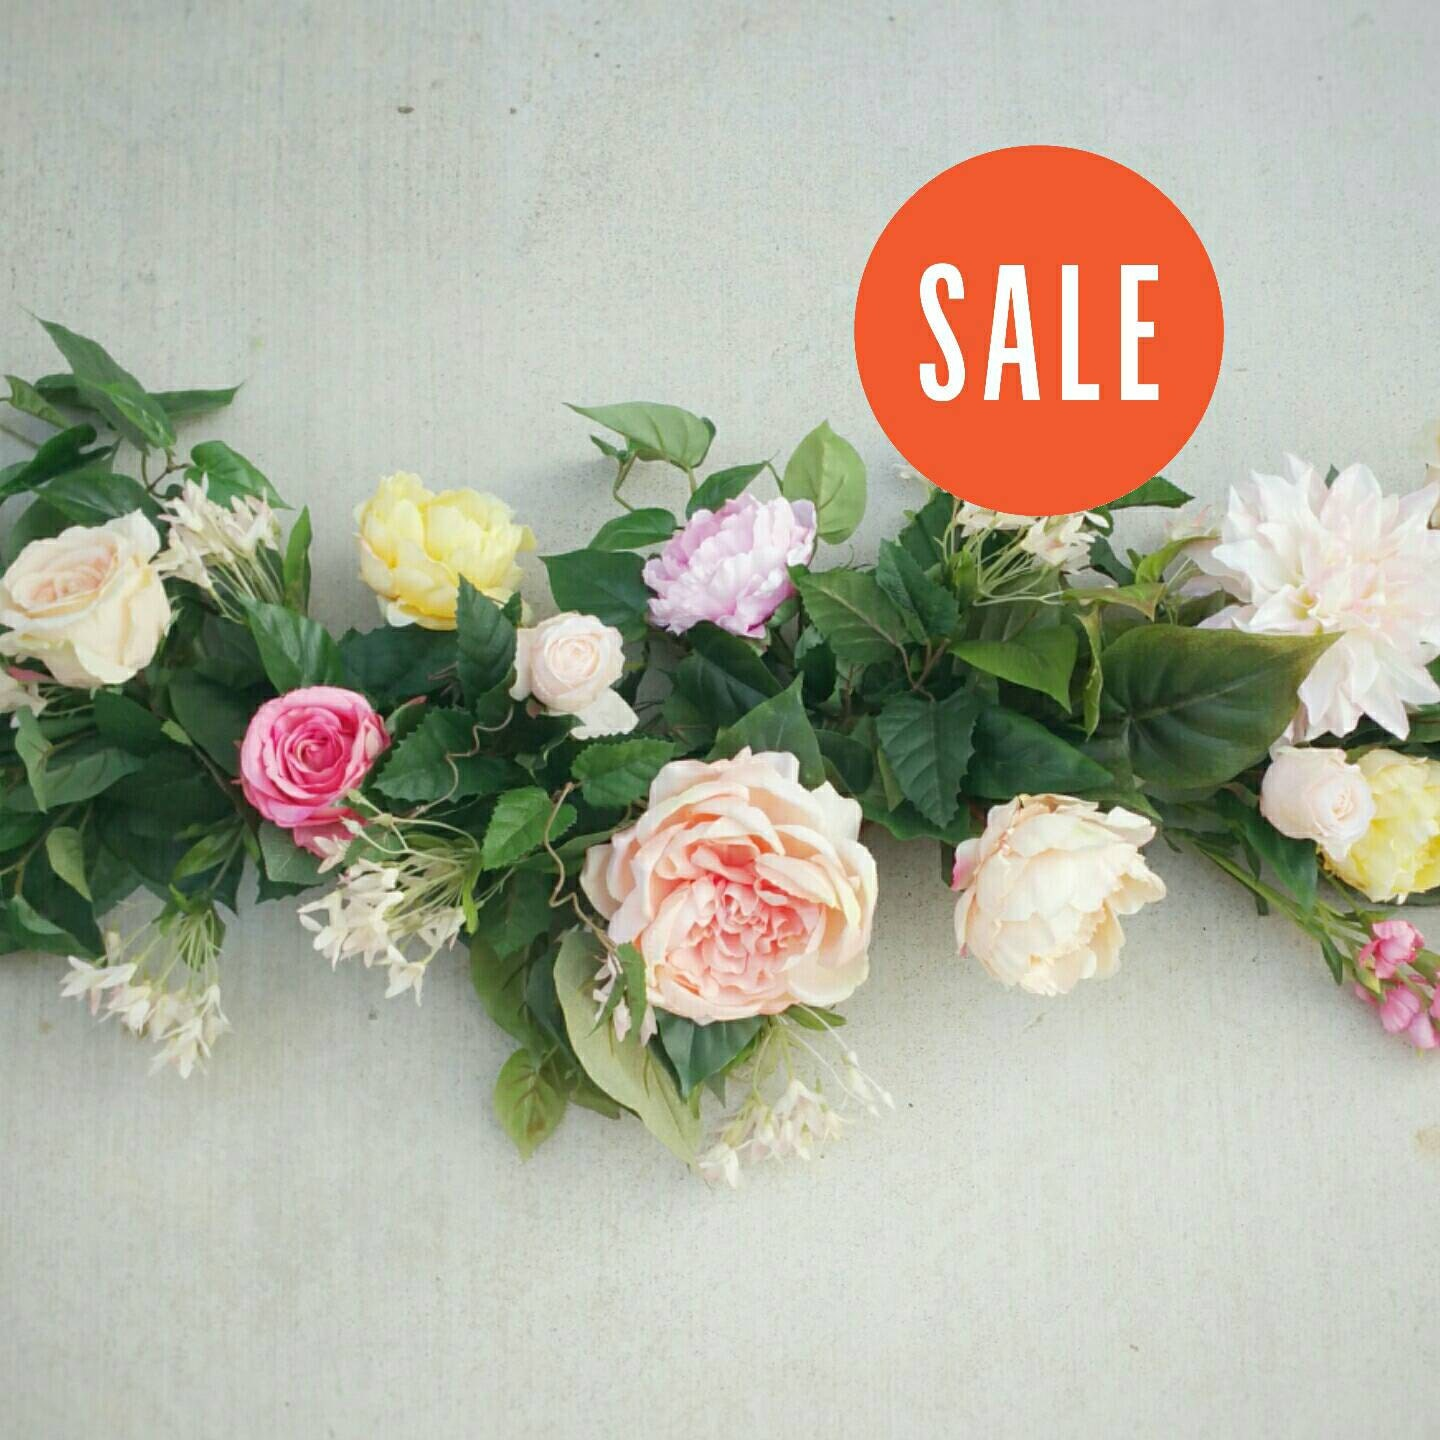 sale flower garland silk flower garland table by thefauxbouquets. Black Bedroom Furniture Sets. Home Design Ideas